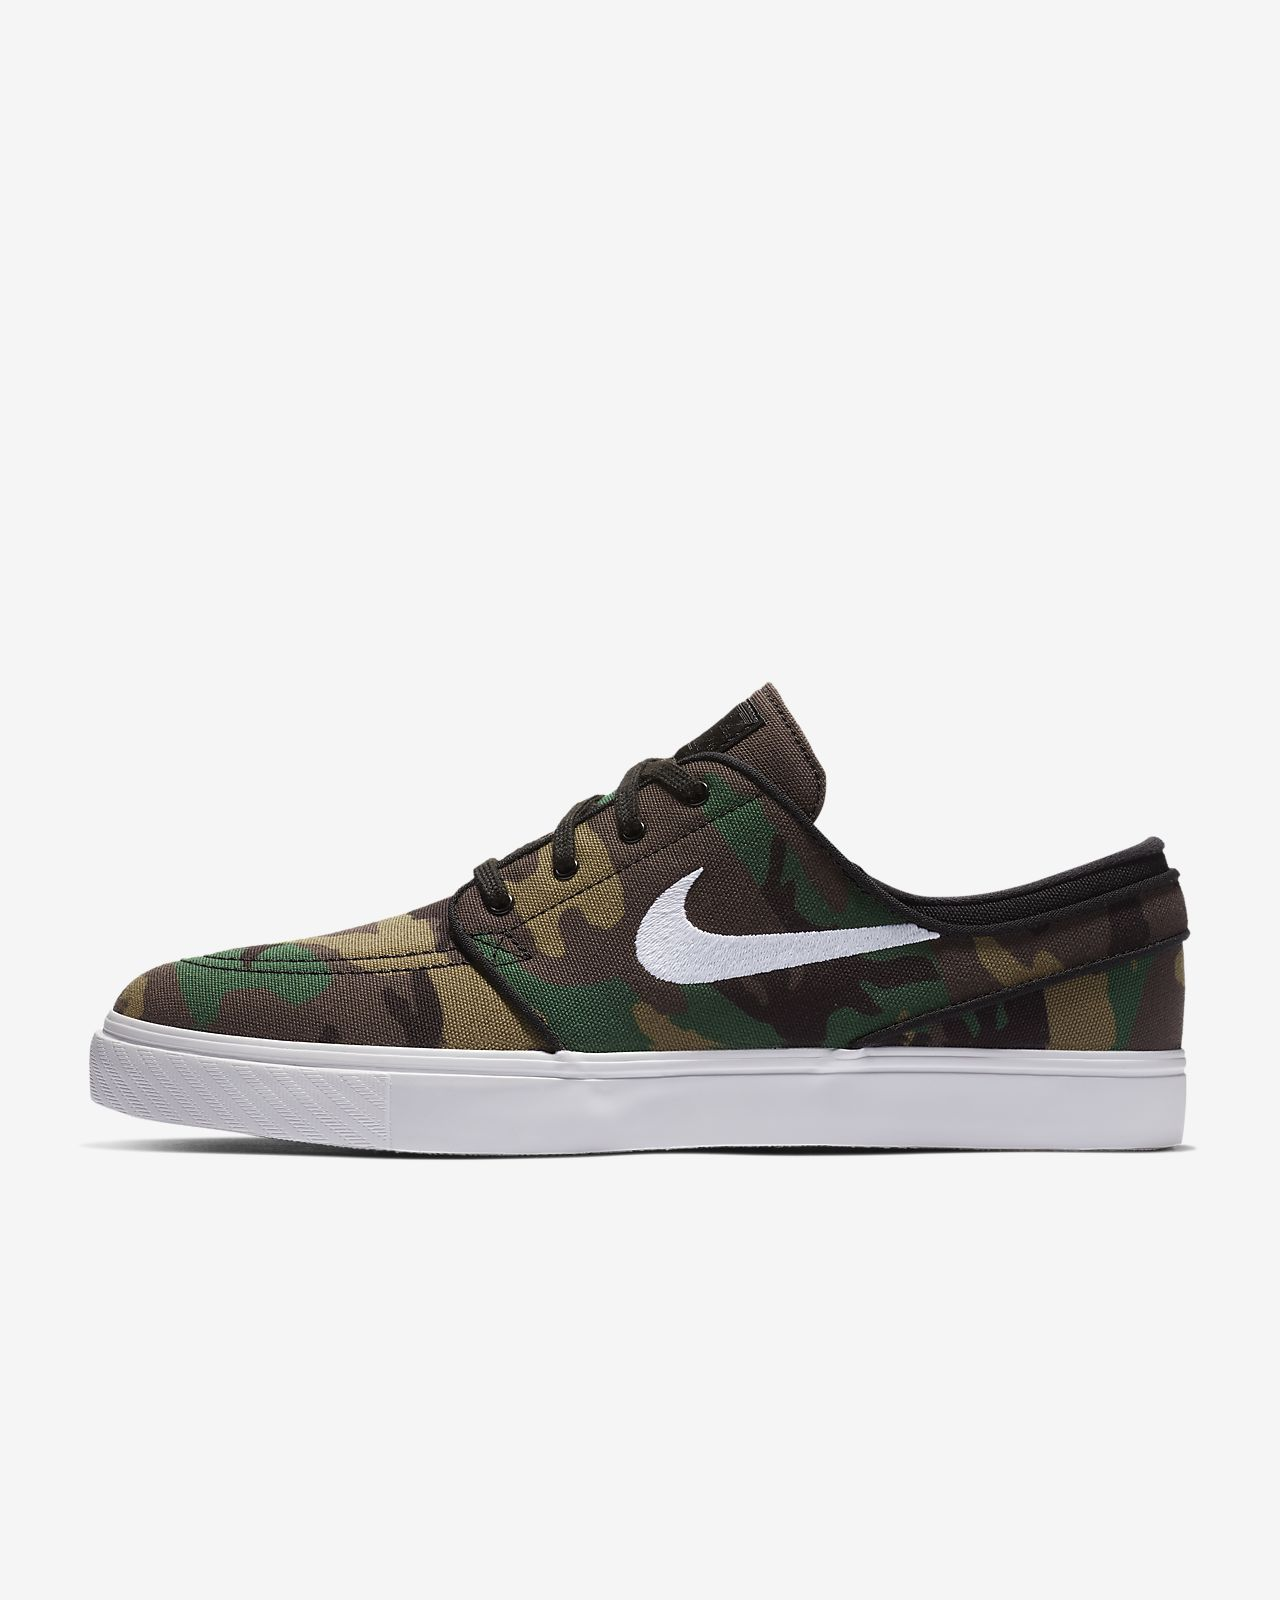 the latest 954c8 347d9 Men s Skate Shoe. Nike SB Zoom Stefan Janoski Canvas